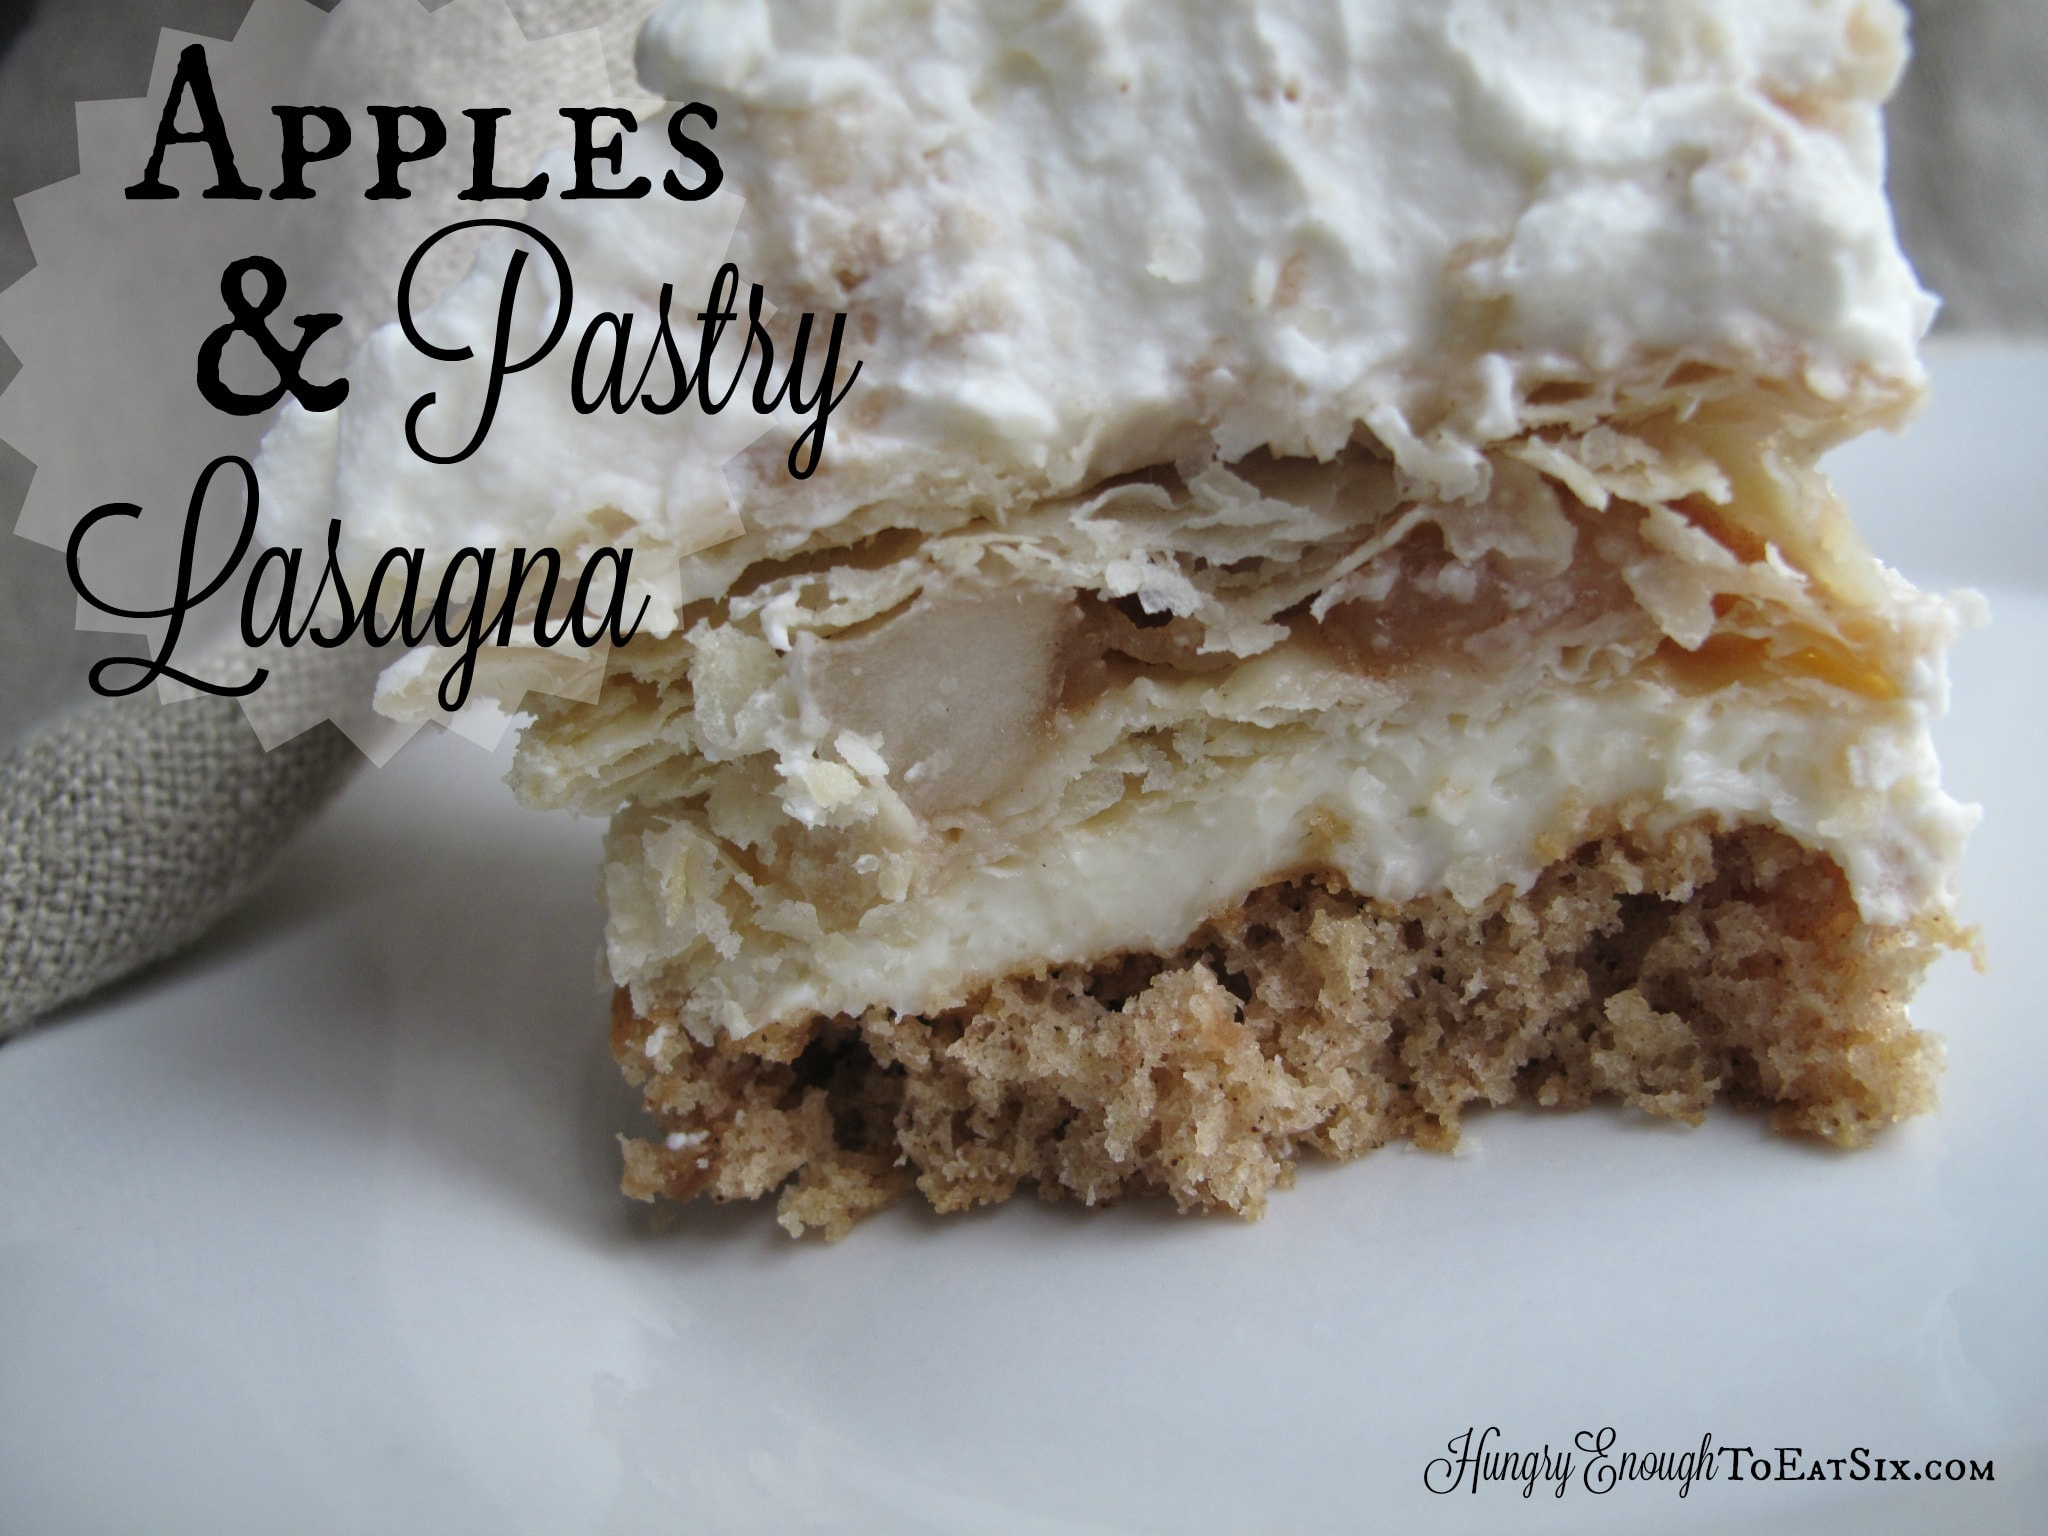 Apples & Pastry Lasagna, from the Lasagna Off Competition! | HungryEnoughToEatSix.com